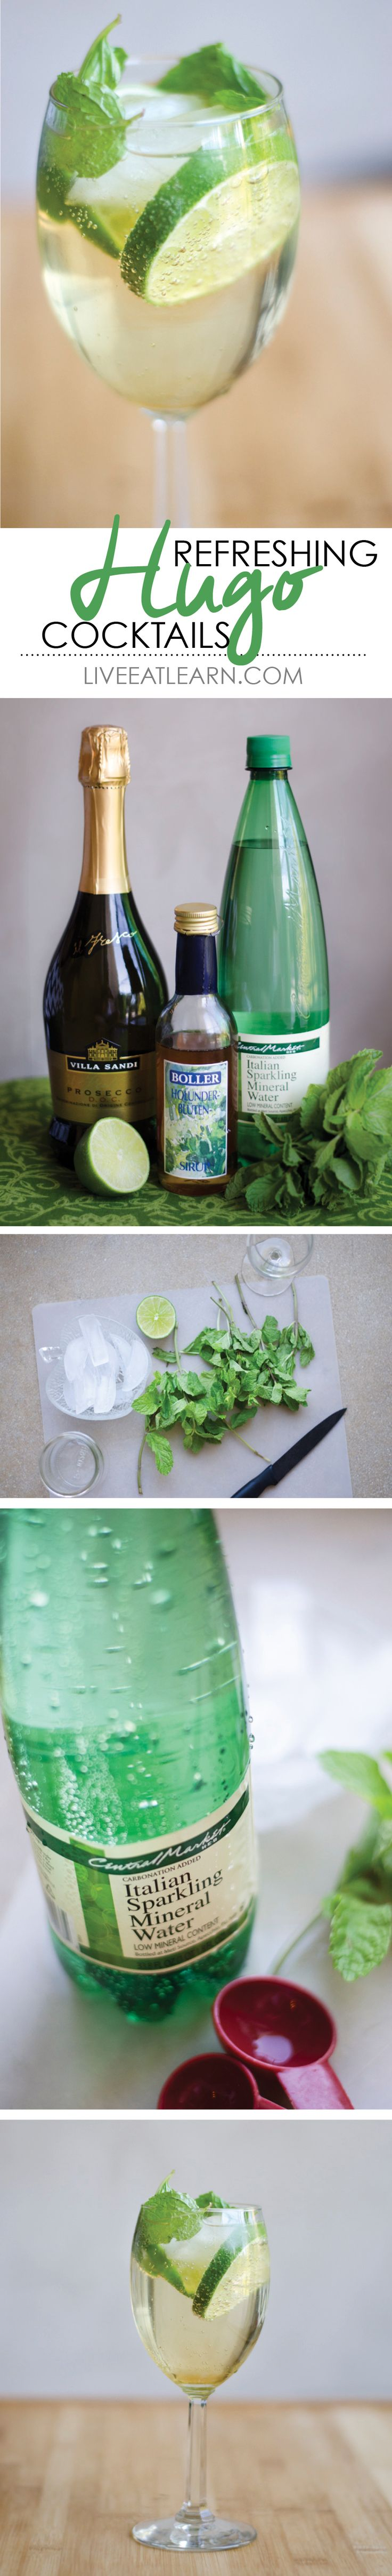 Hugo cocktails made with prosecco, mint, elderflower syrup, and lime. So refreshing, the perfect summer drink! // Live Eat Learn